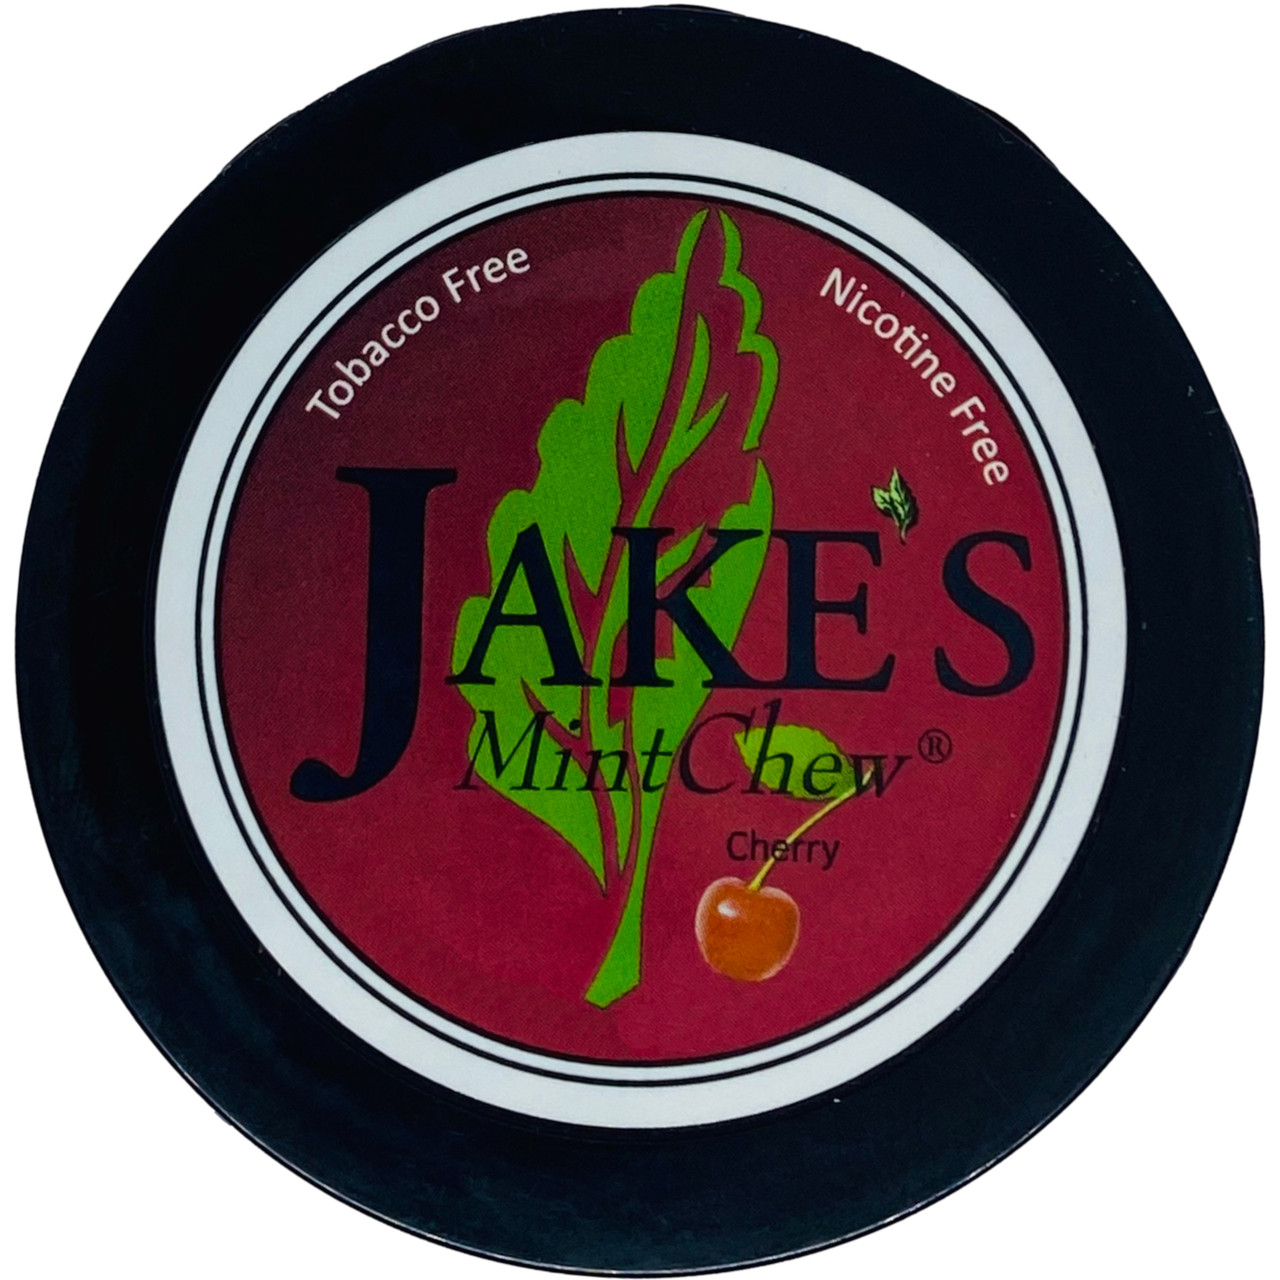 Jake's Mint Chew Cherry 1 Can